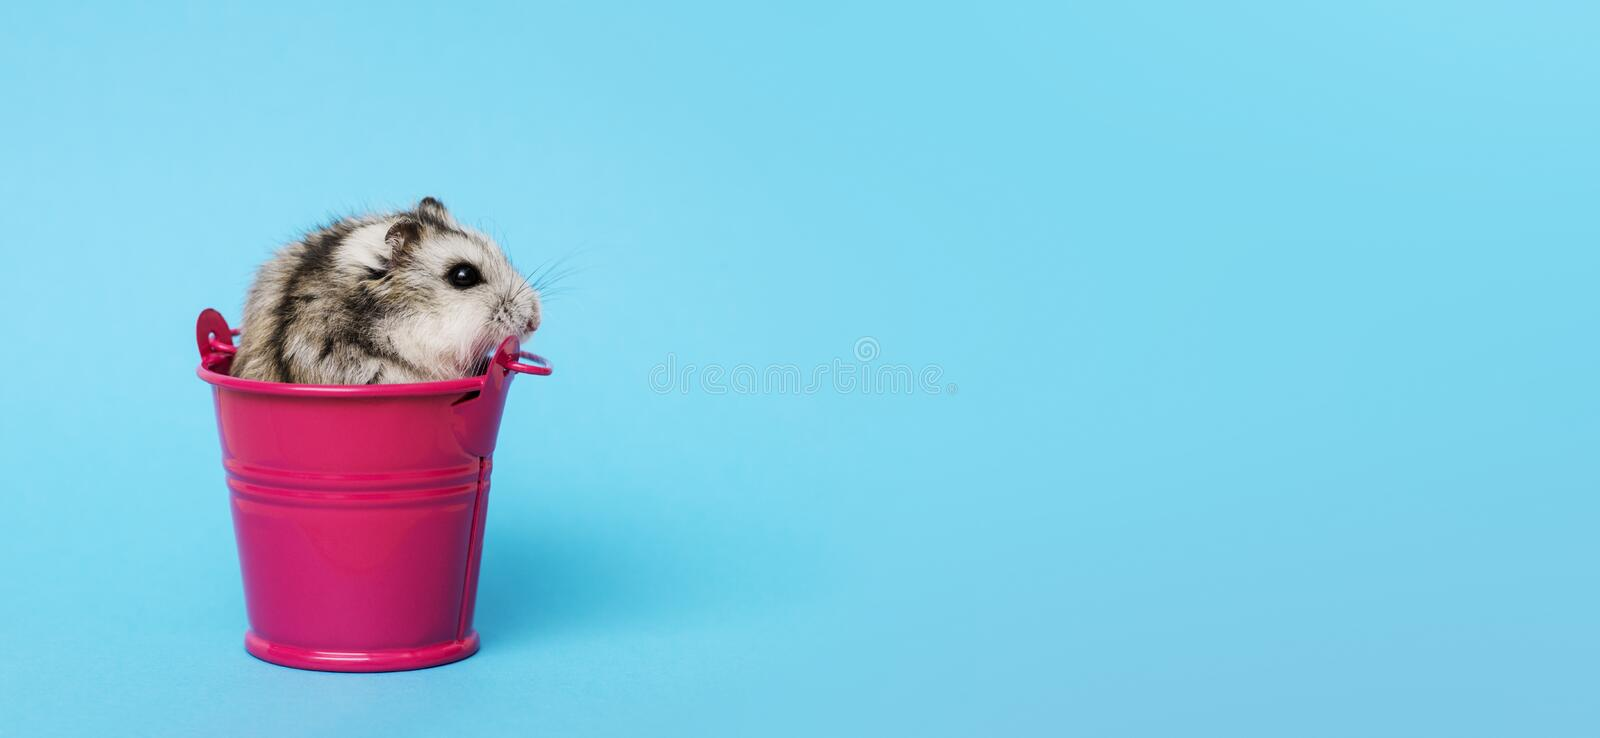 Small hamster in bucket on blue background with copy space. Gray Syrian hamster in bucket. Baby animal theme.  stock photo